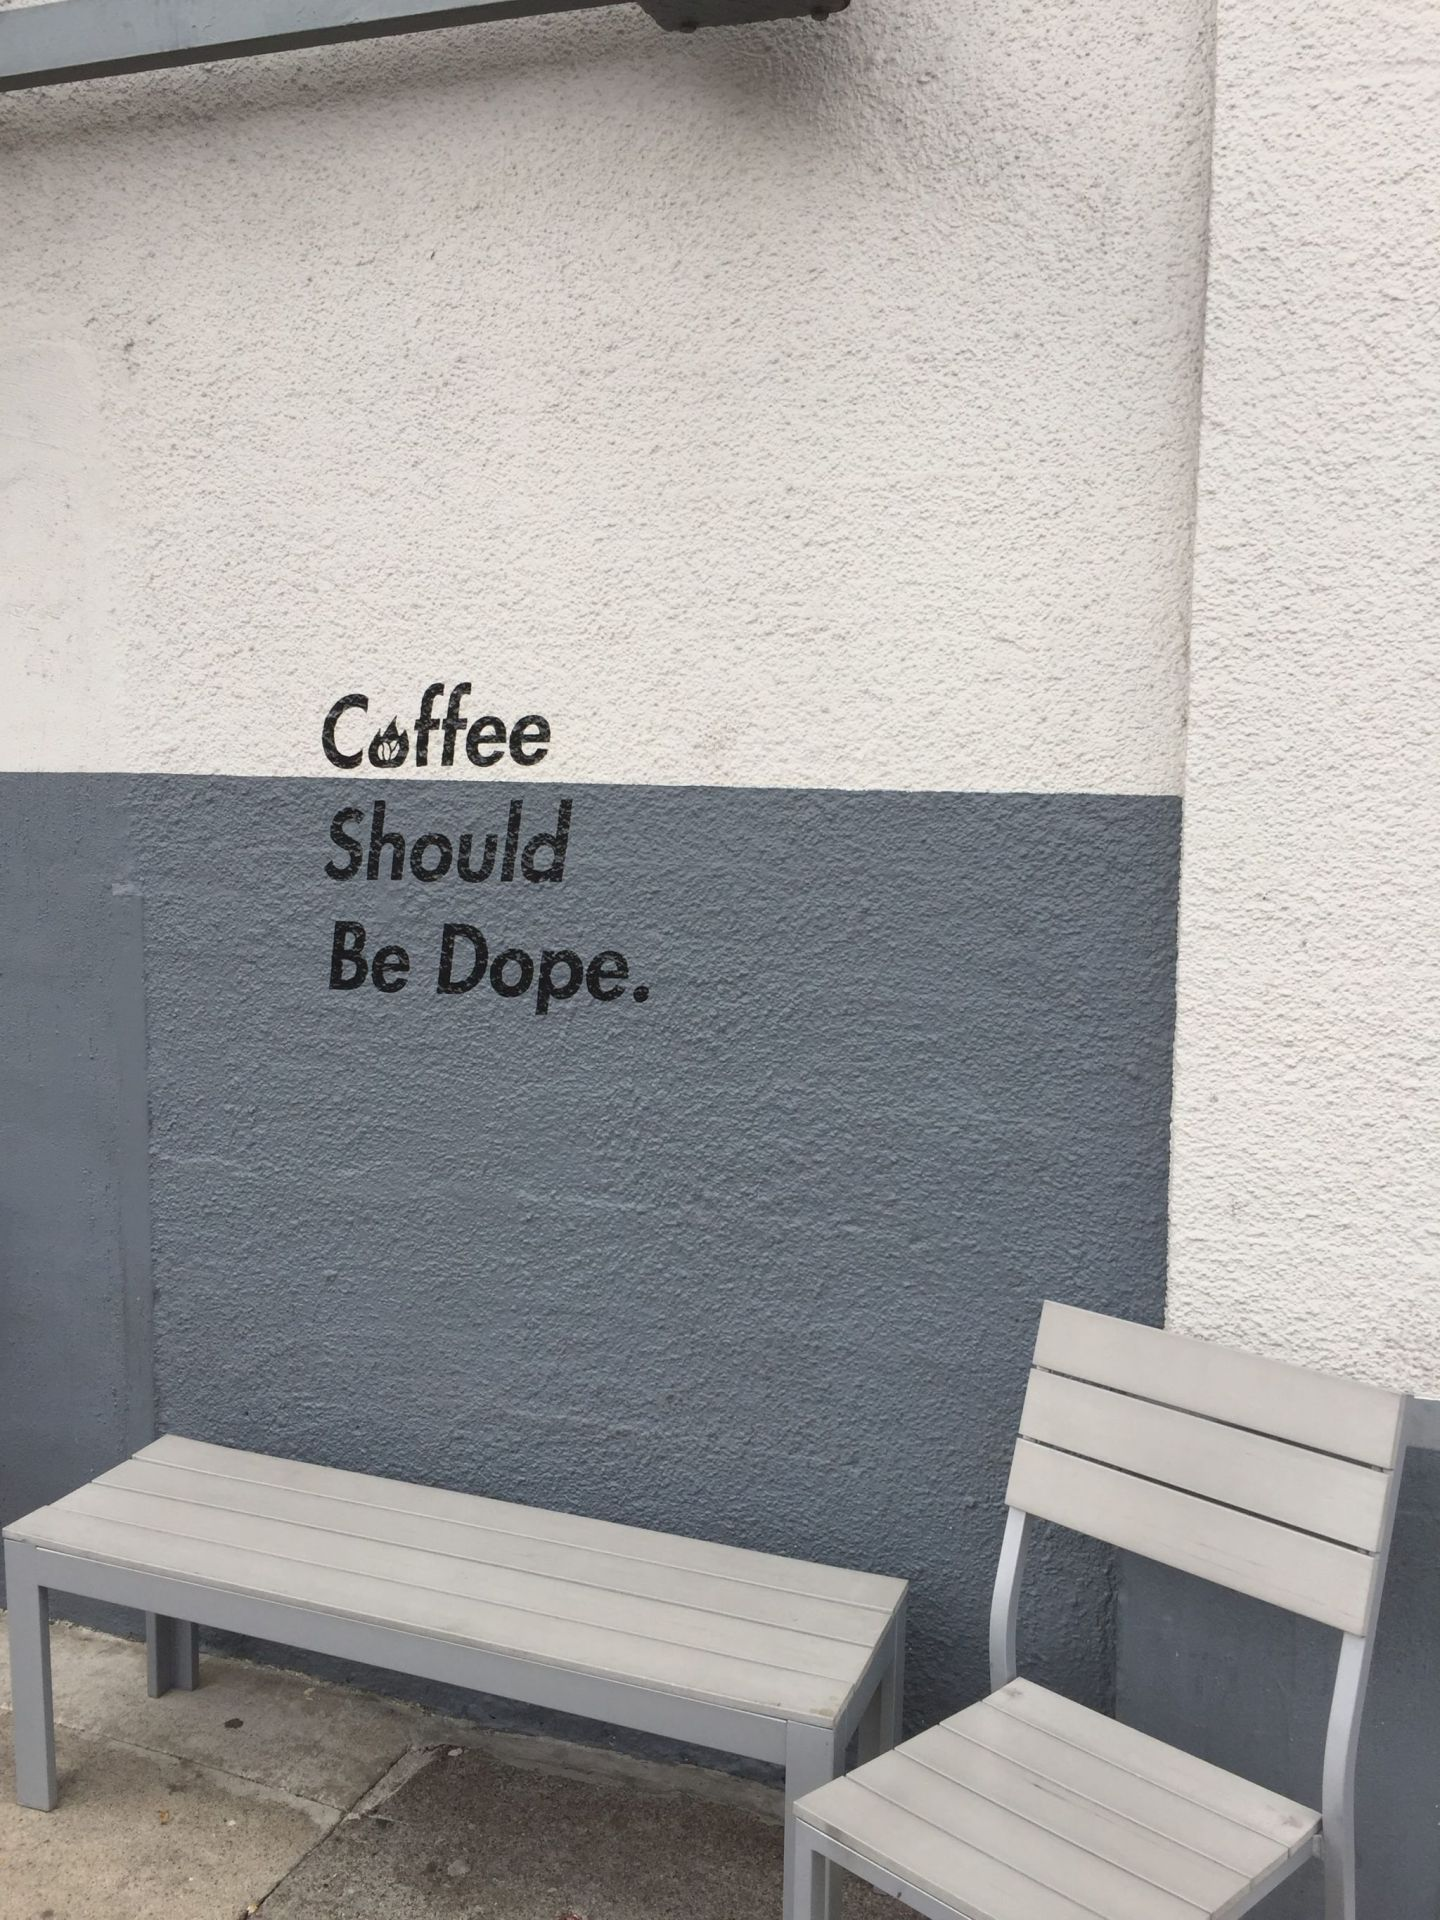 Coffee should be dope mural, Portland